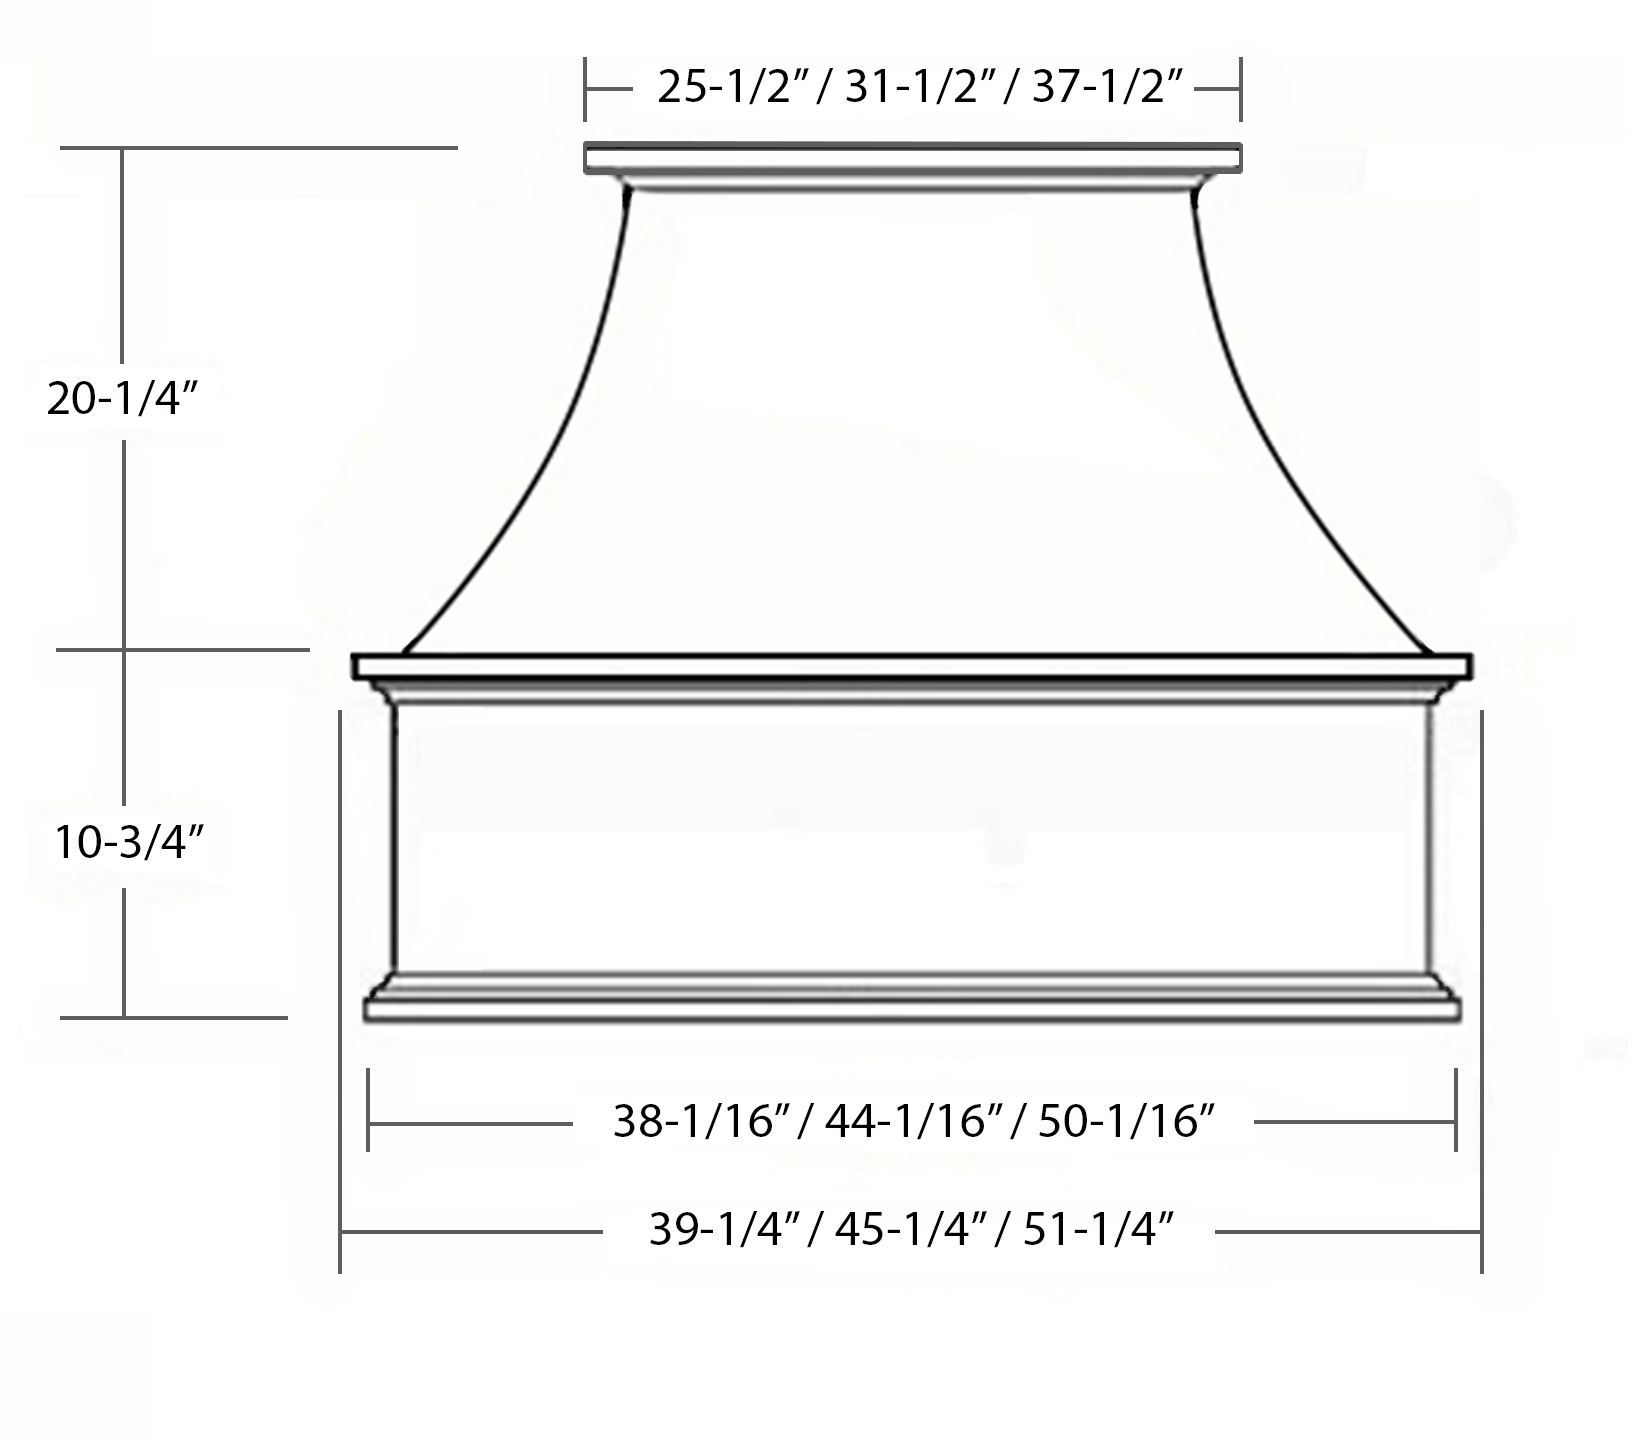 SY-WCVS GOURMET CHIMNEY HOOD (front view)